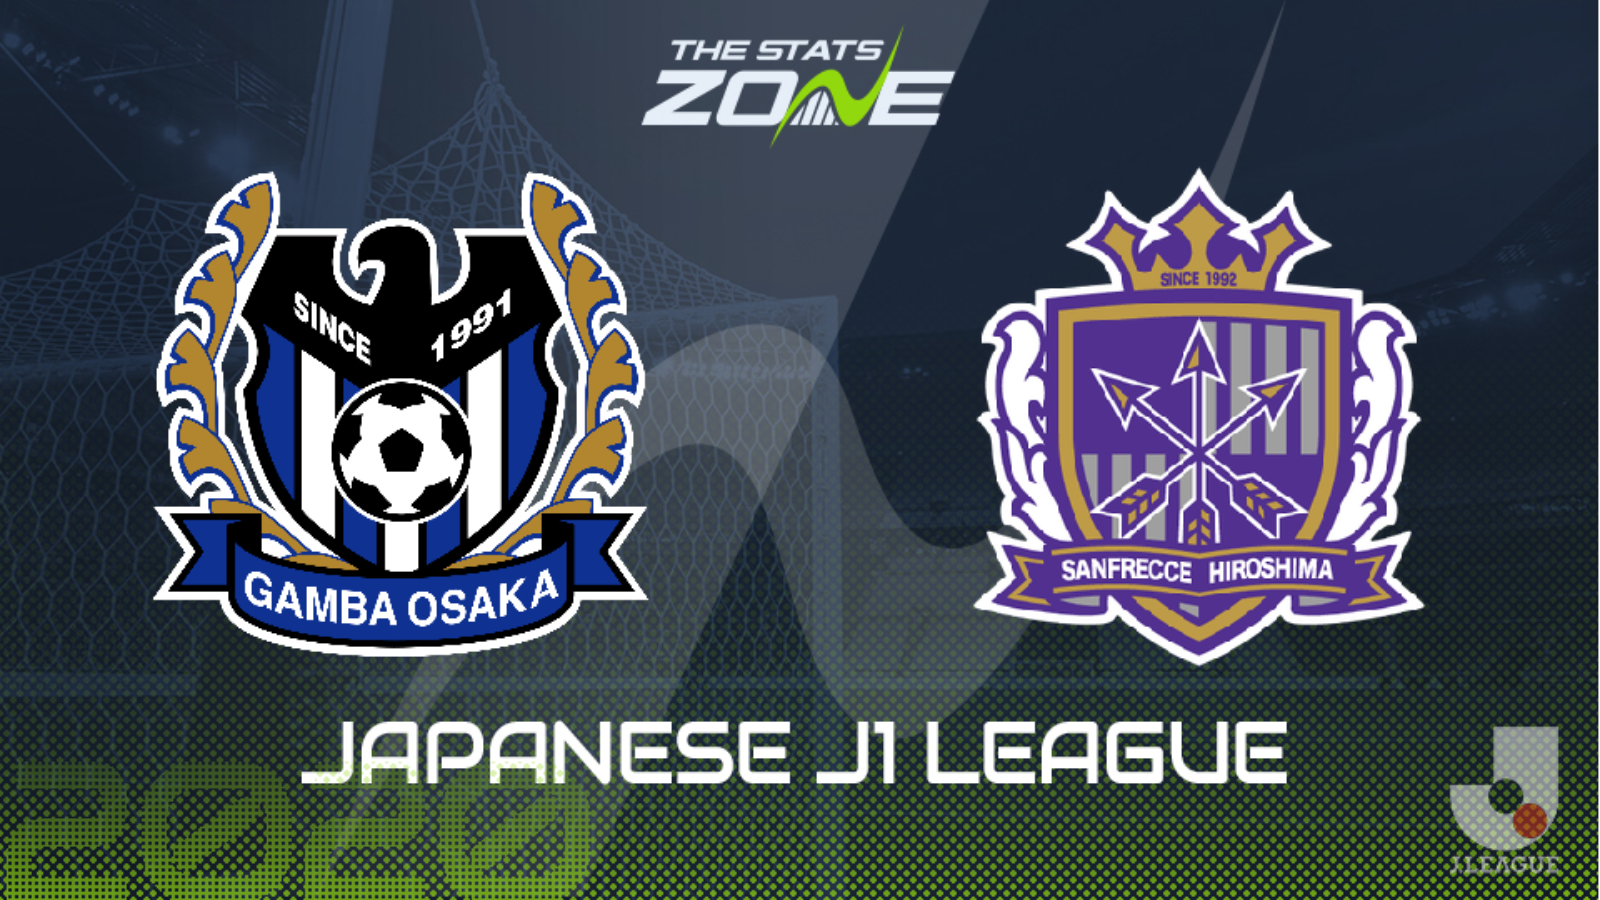 2020 Japanese J1 League Gamba Osaka Vs Sanfrecce Hiroshima Preview Prediction The Stats Zone